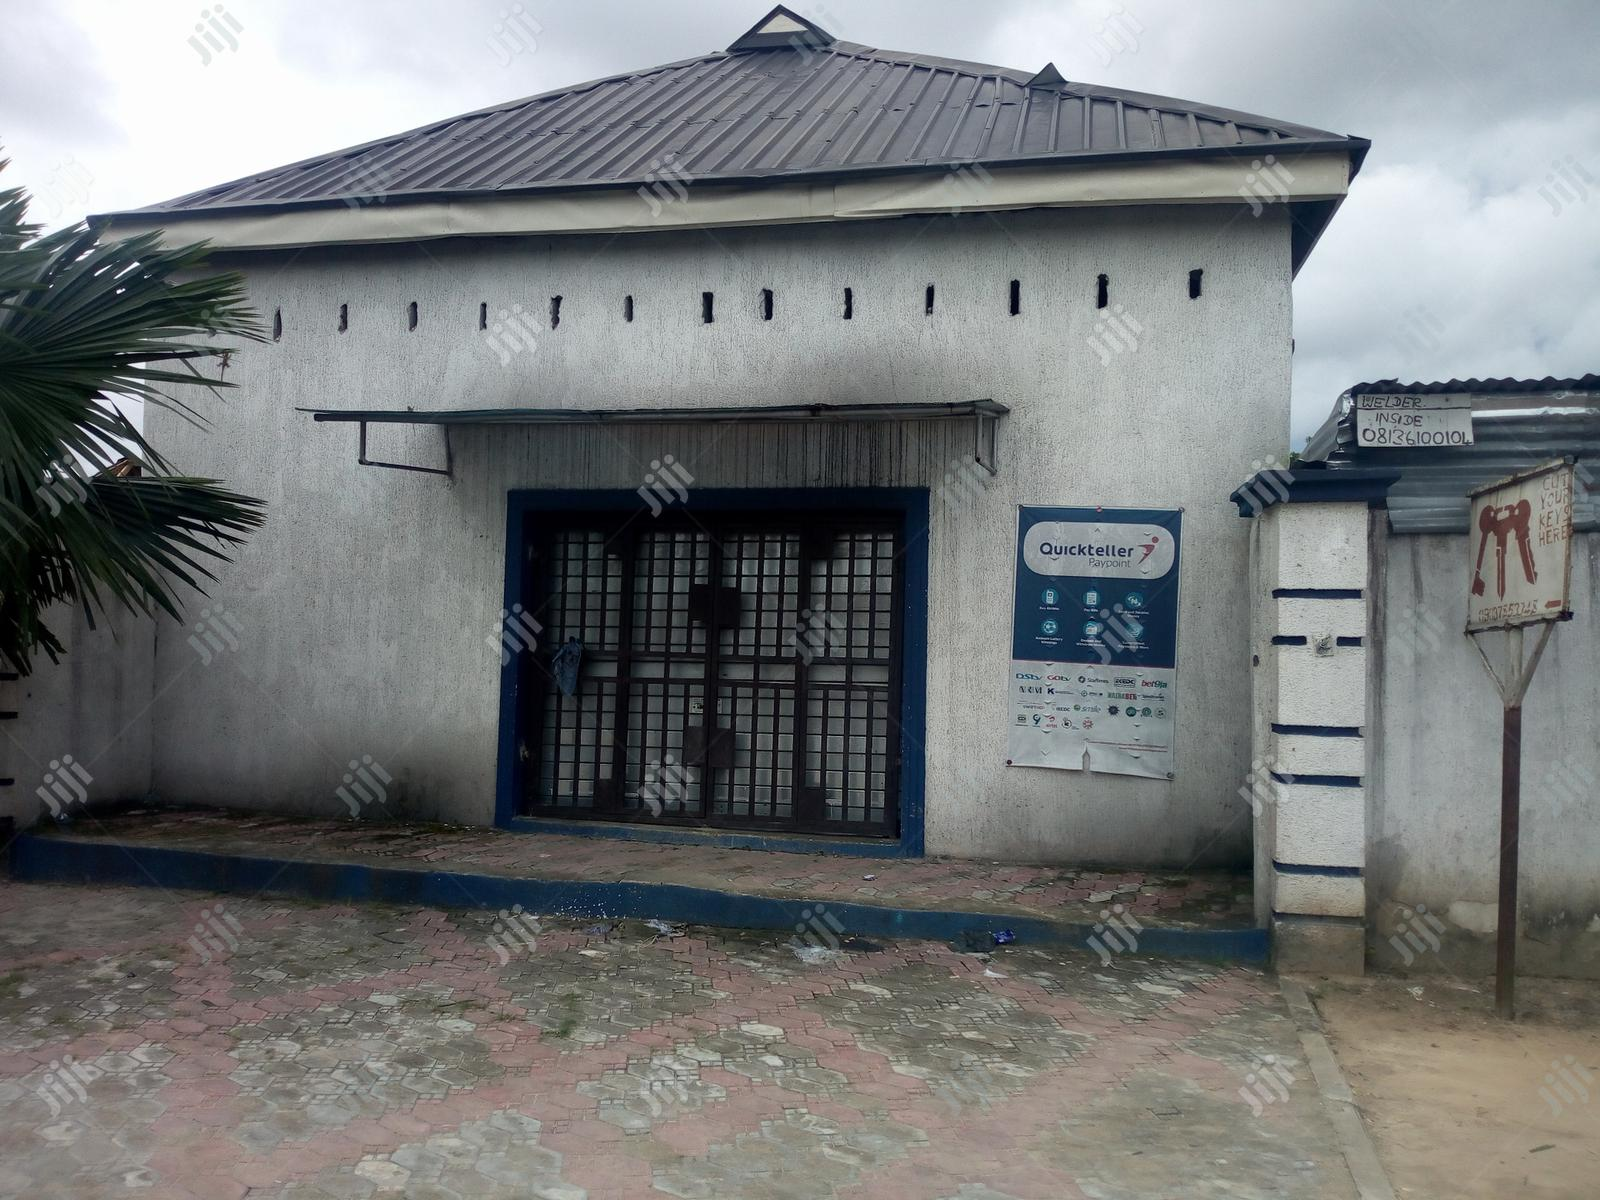 To Let: A Mini Warehouse on Airport Rd Near Rumuokoro